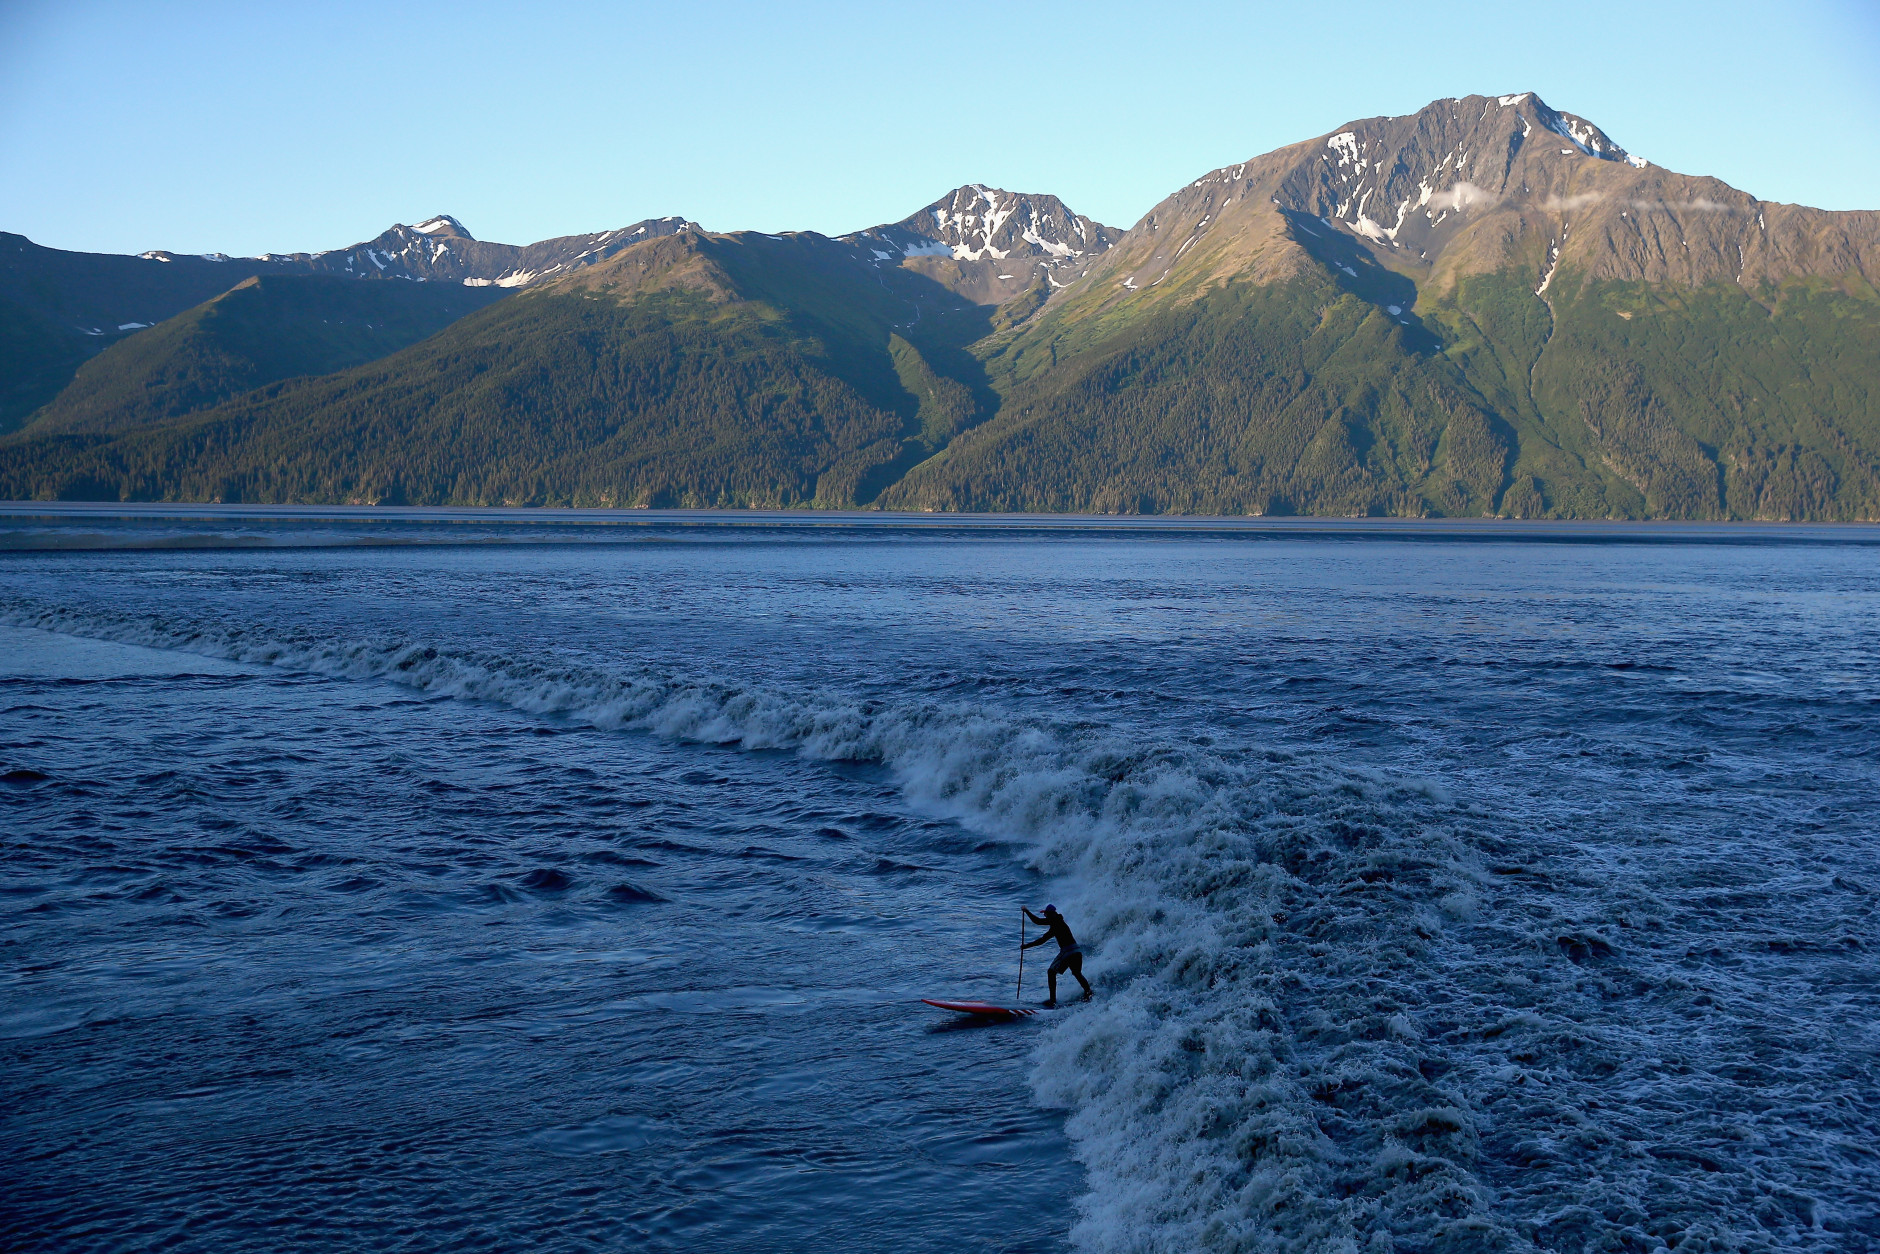 ANCHORAGE, AK - JULY 14:  A surfer rides the Bore Tide at Turnagain Arm on July 14, 2014 in Anchorage, Alaska. Alaska's most famous Bore Tide, occurs in a spot on the outside of Anchorage in the lower arm of the Cook Inlet, Turnagain Arm, where wave heights can reach 6-10 feet tall, move at 10-15 mph and the water temperature stays around 40 degrees Fahrenheit. This years Supermoon substantially increased the size of the normal wave and made it a destination for surfers.  (Photo by Streeter Lecka/Getty Images)